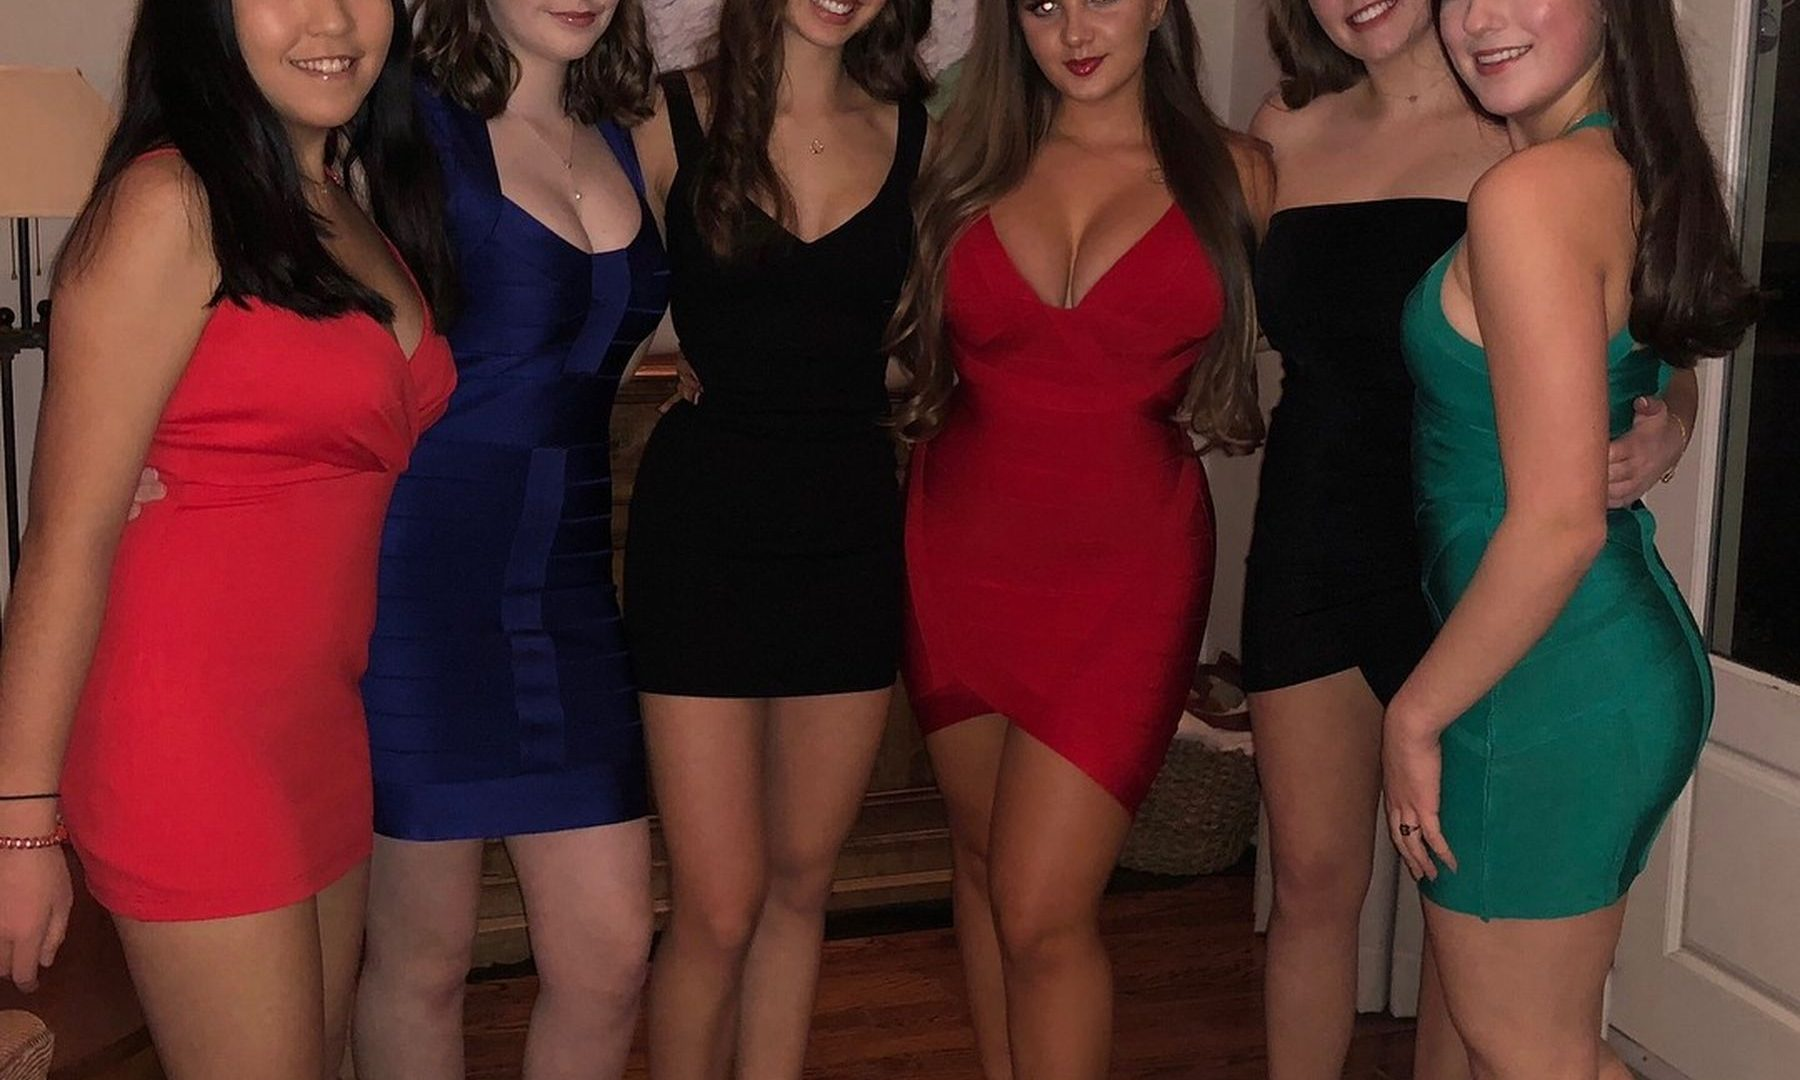 Sexy chicks in fitted dresses look great. Hot girls with perfect charms absolutely free